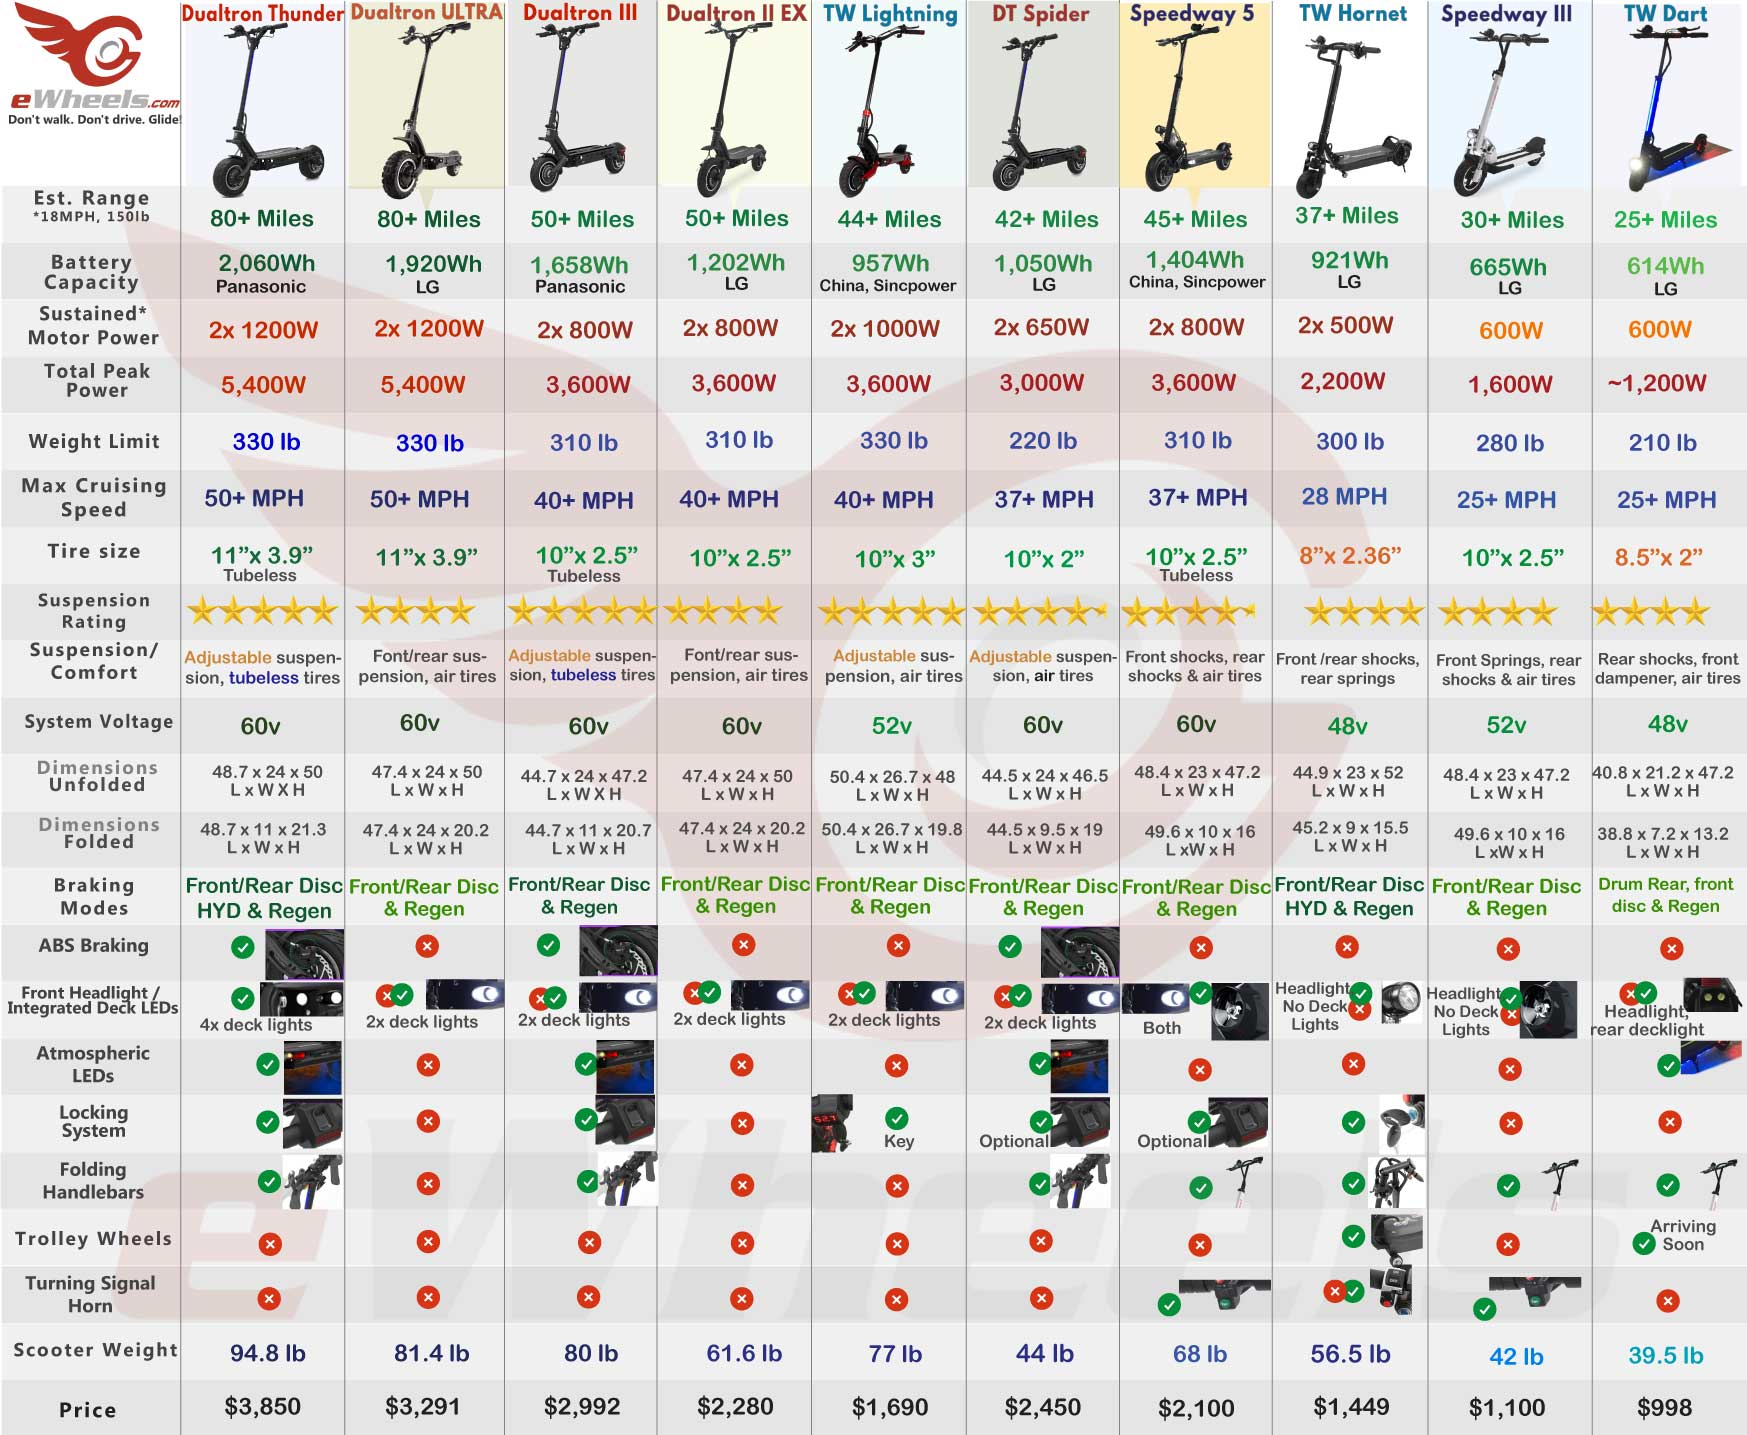 eScooter Electric Scooter Comparison Chart Table of Specifications, Dualtron, Speedway, Turbowheel, Ninebot Inmotion, Thunder, Zero 10X, Zero 9, Dart, Hornet, Lightning